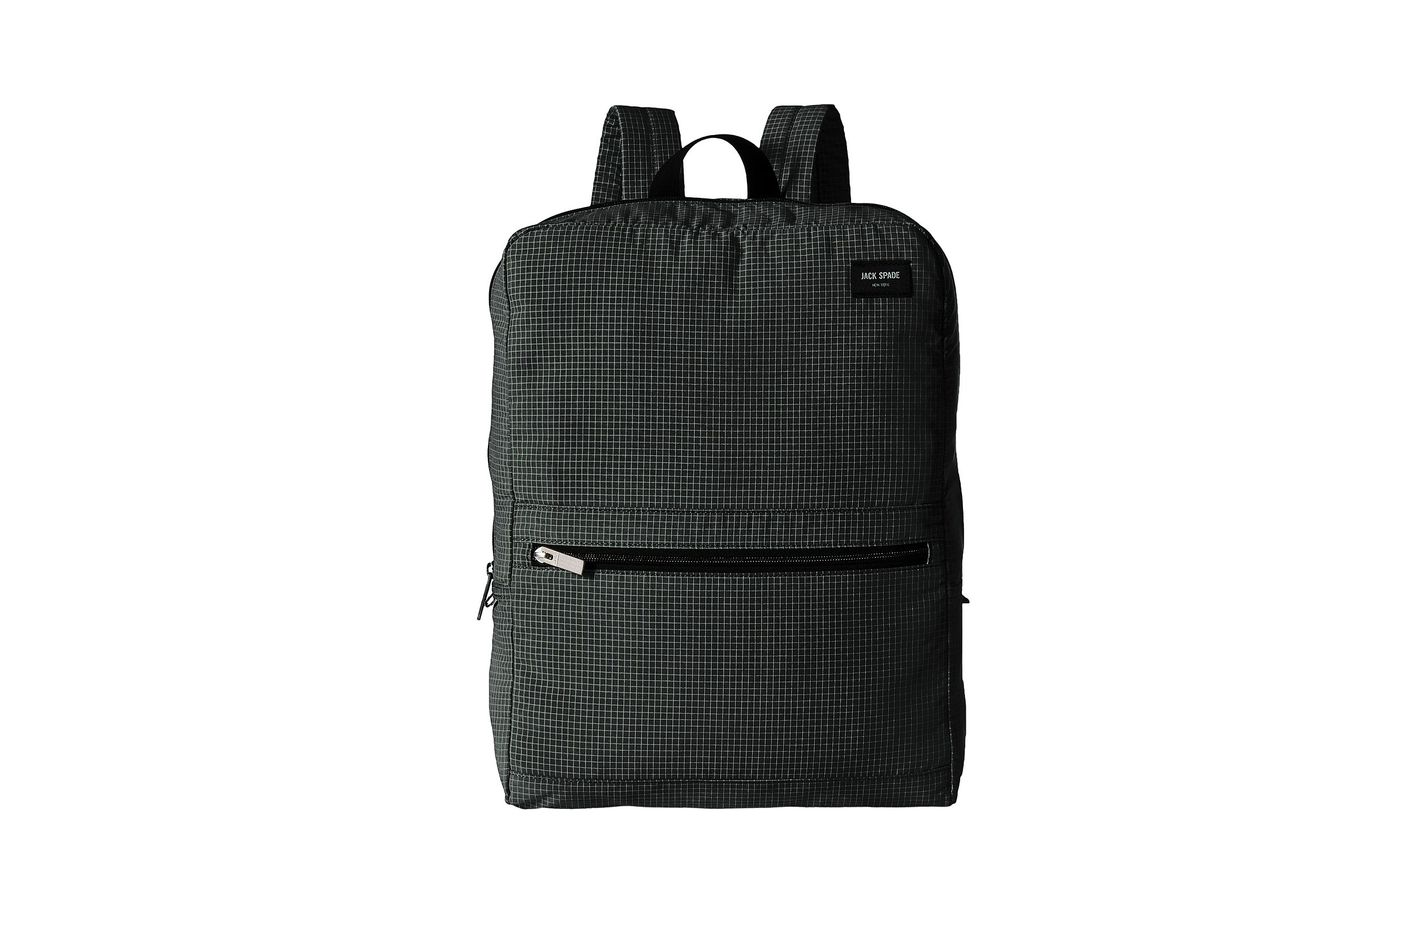 Jack Spade Packable Graphic Check Backpack